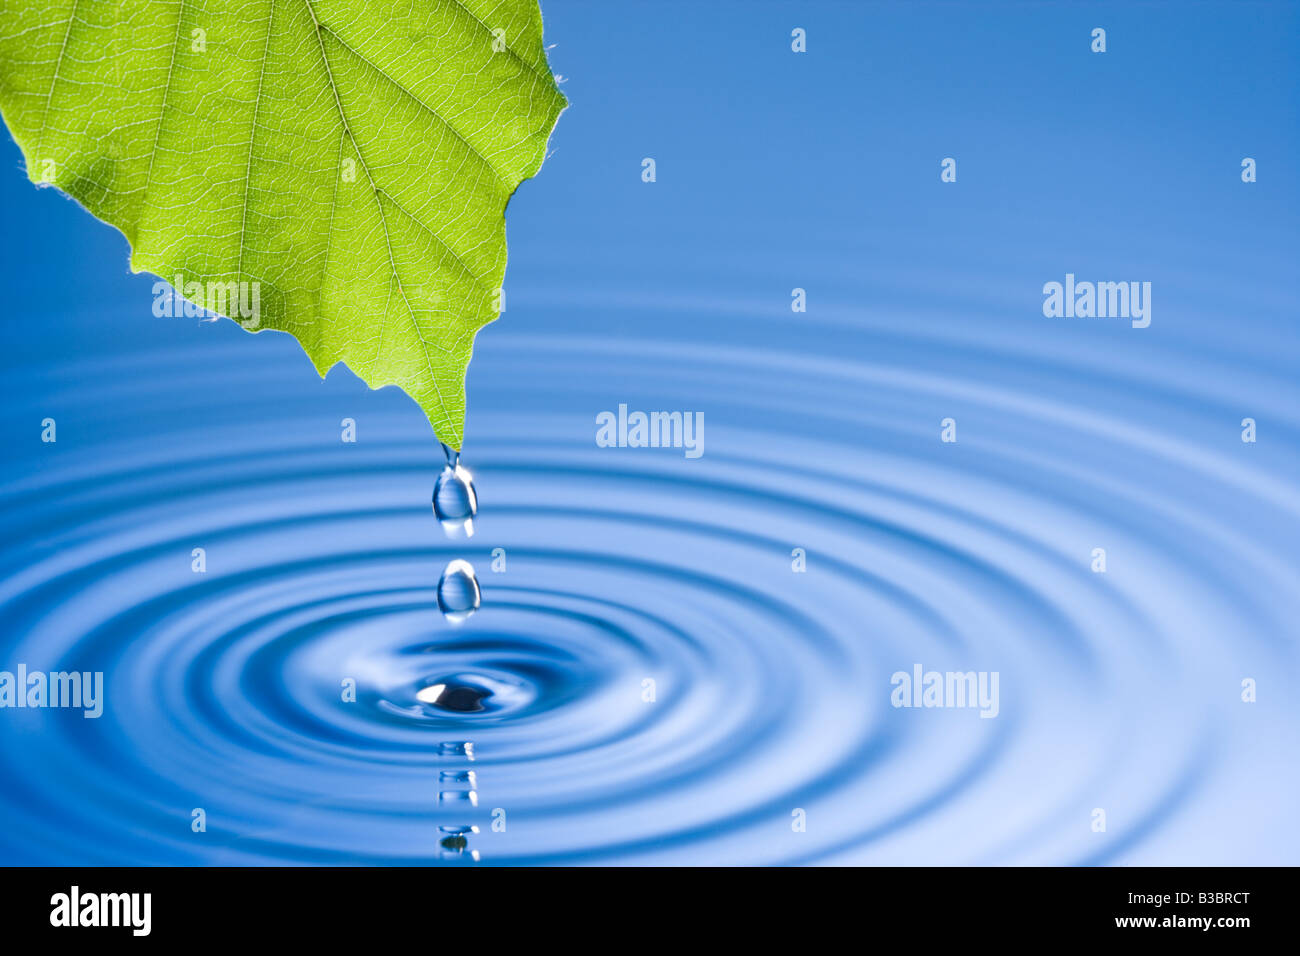 Water droplets falling from leaf causing ripples. Beech tree leaf. - Stock Image